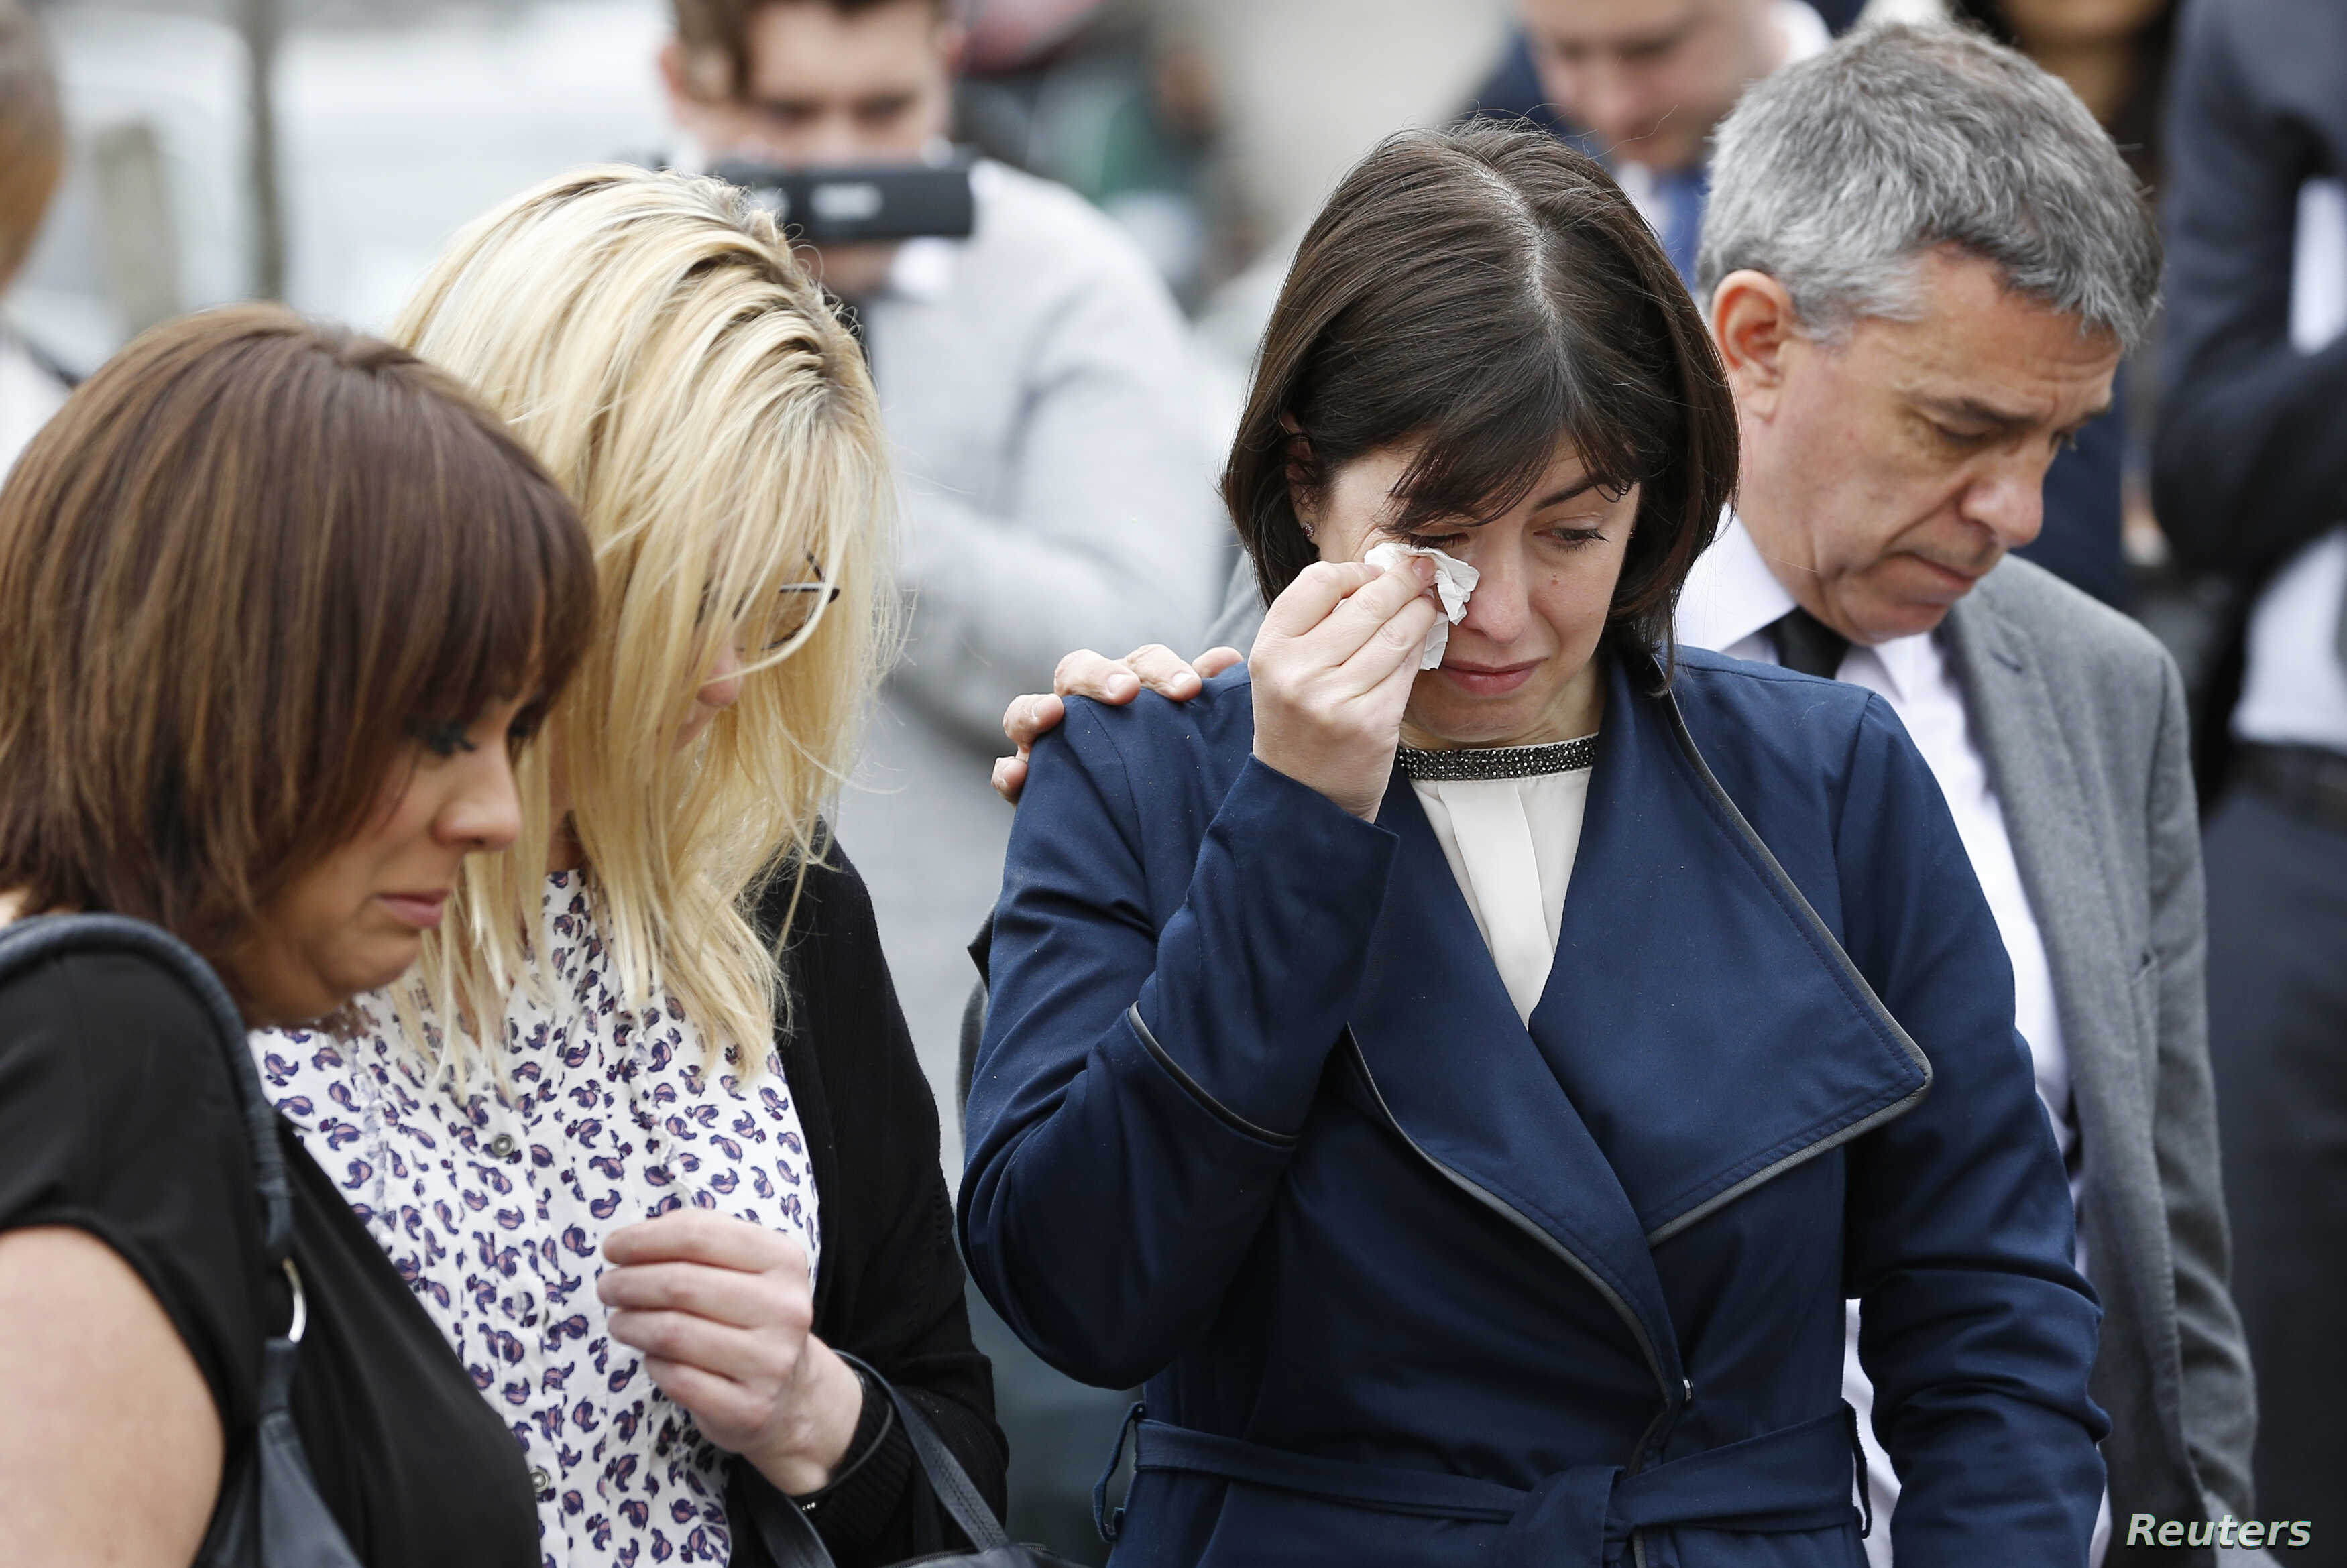 Labour MP's (L-R) Paula Sheriff, Lucy Powell, and Jeff Smith, and former Labour Party councillor Karen Rowling (2nd L), leave tributes near the scene of the murder of Labour Member of Parliament Jo Cox in Birstal near Leeds, Britain, June 17, 2016.  ...